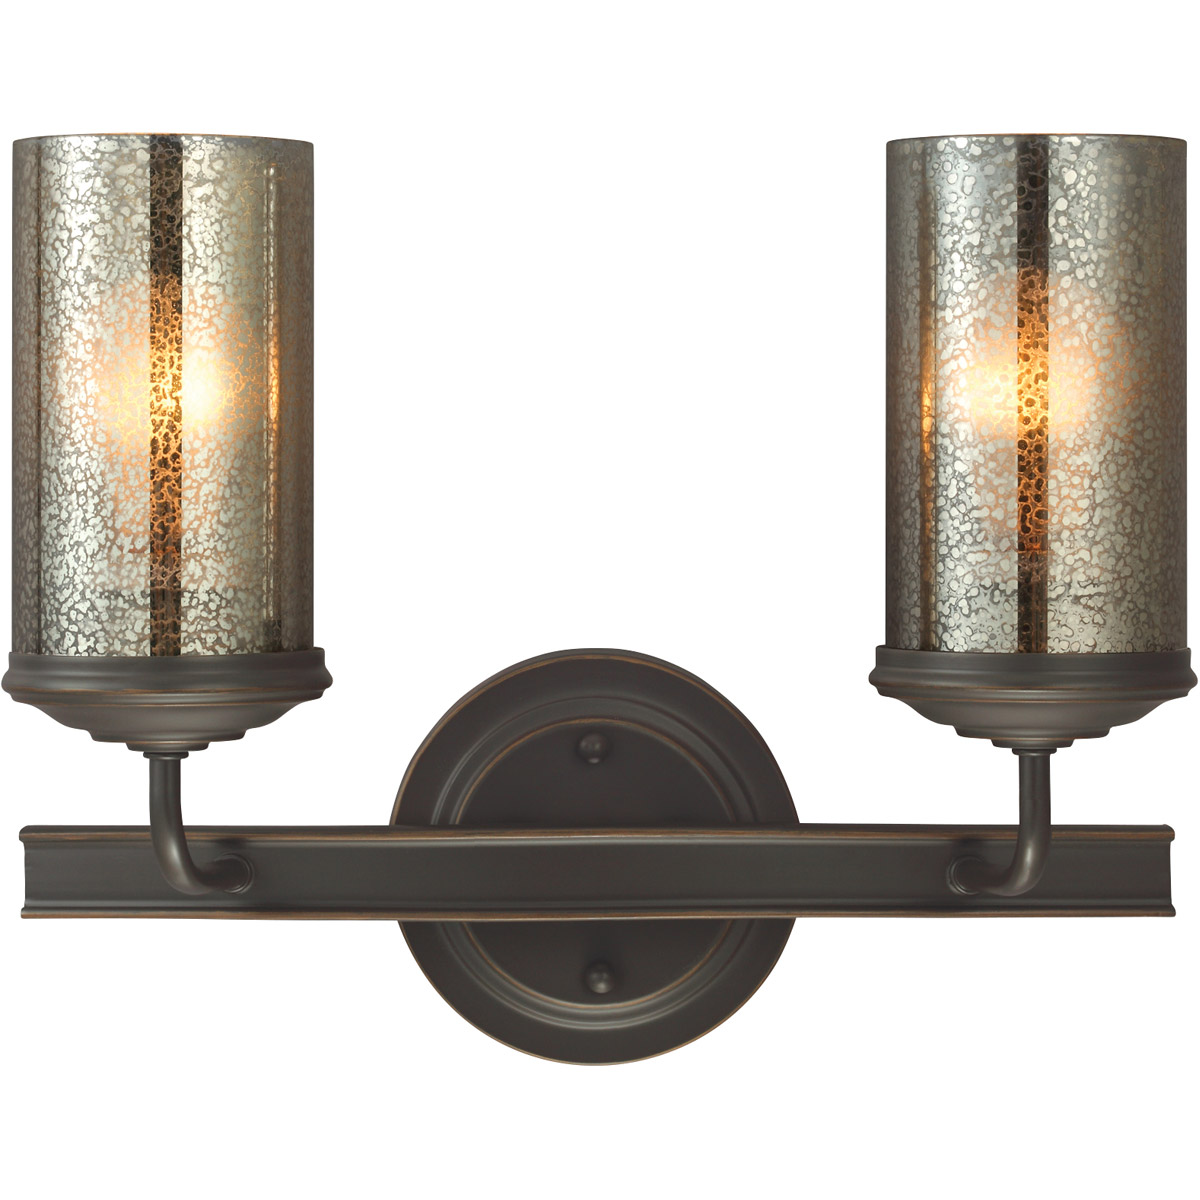 Sea Gull Sfera 2 Light Bath Vanity in Autumn Bronze 4410402BLE-715